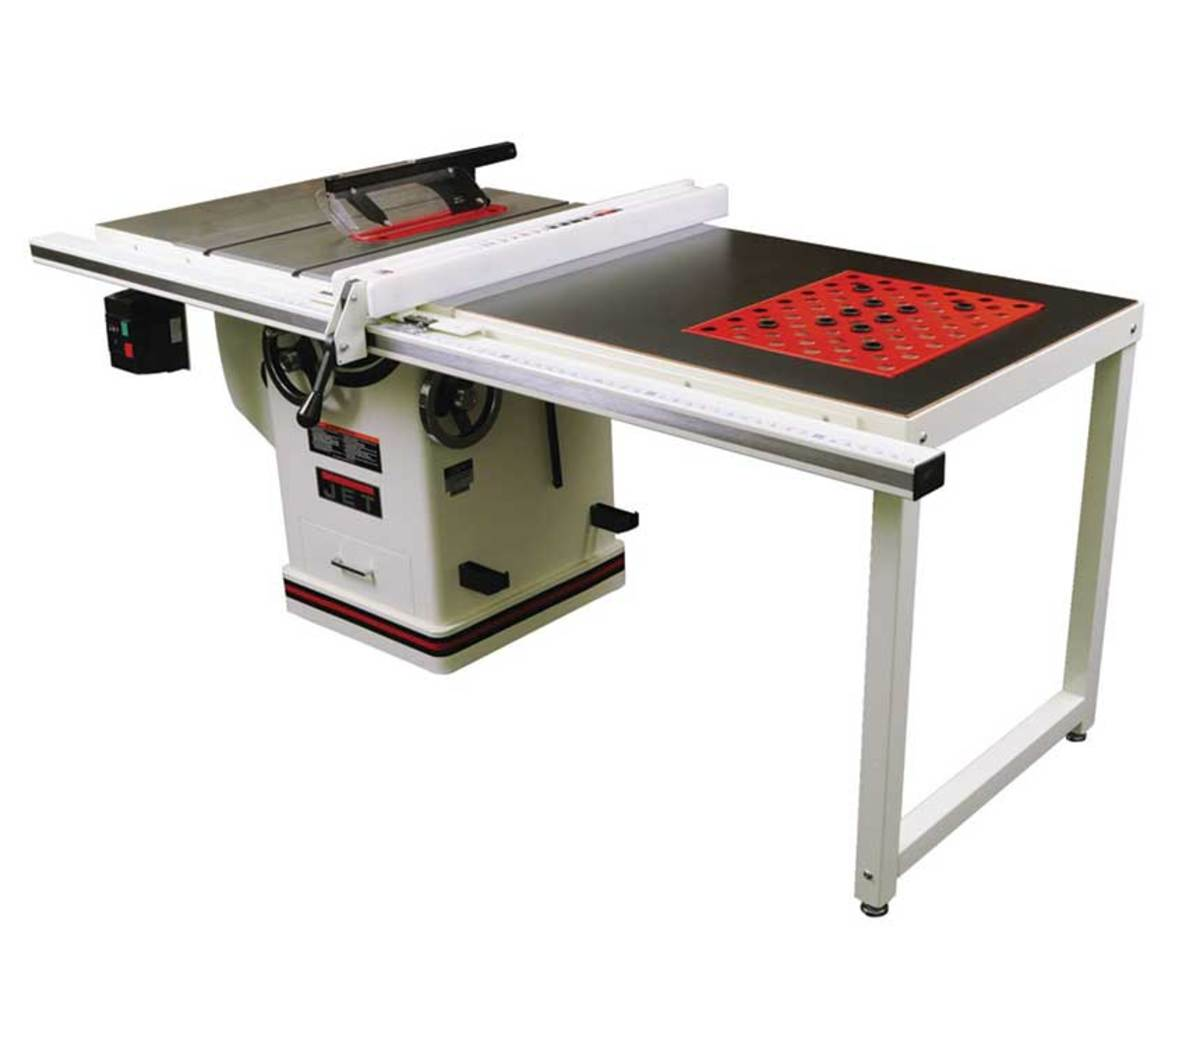 The Deluxe Xacta saw from Jet with downdraft table.